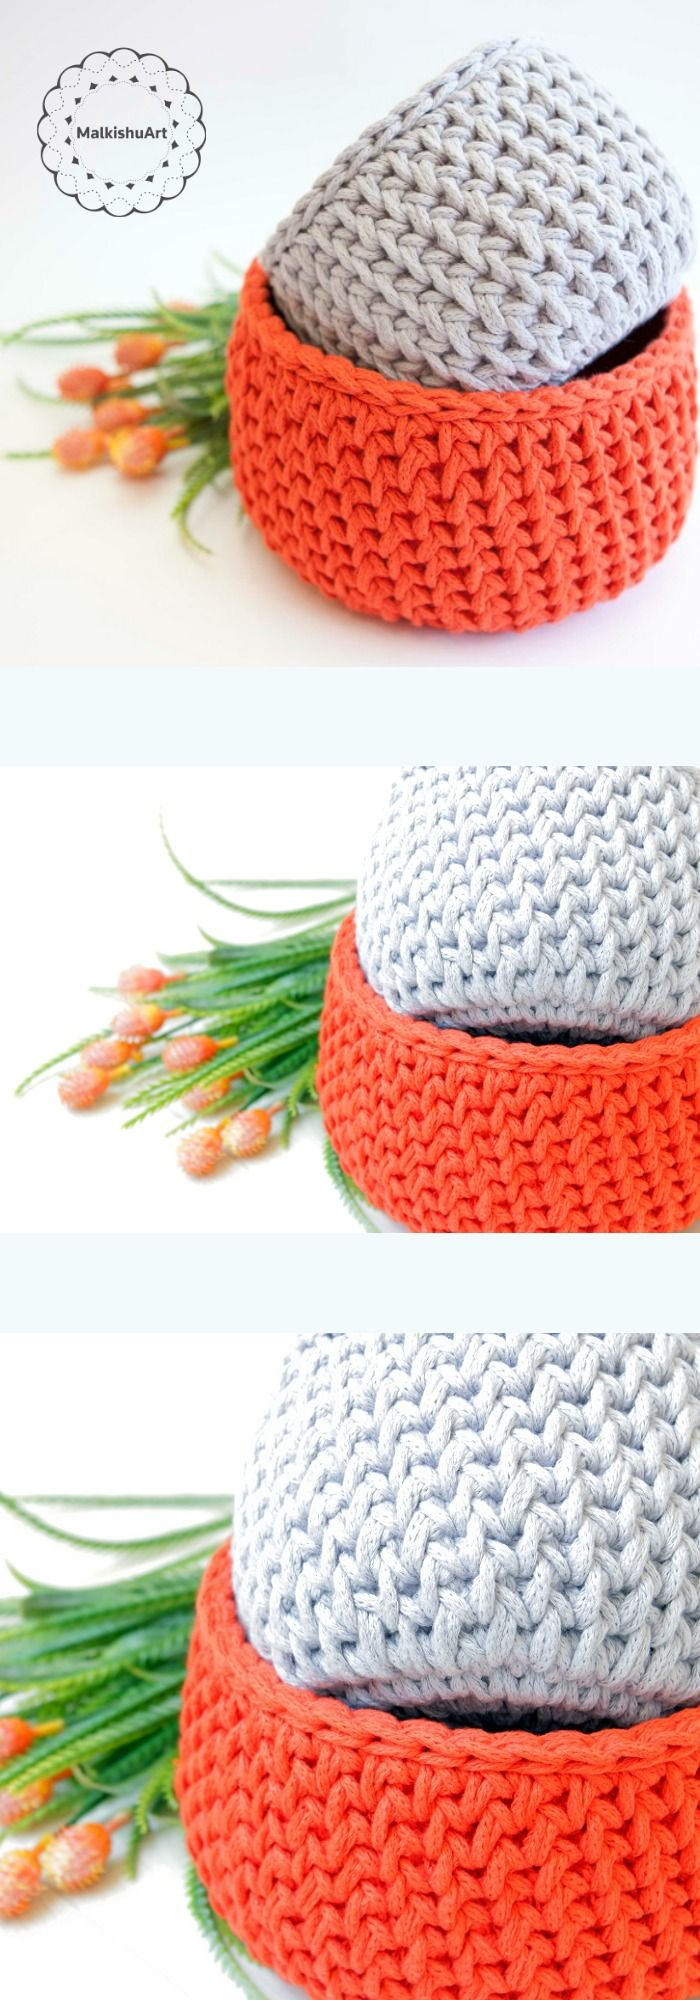 my Round Plaited Texture Crochet Basket – PDF Pattern (US crochet terms)